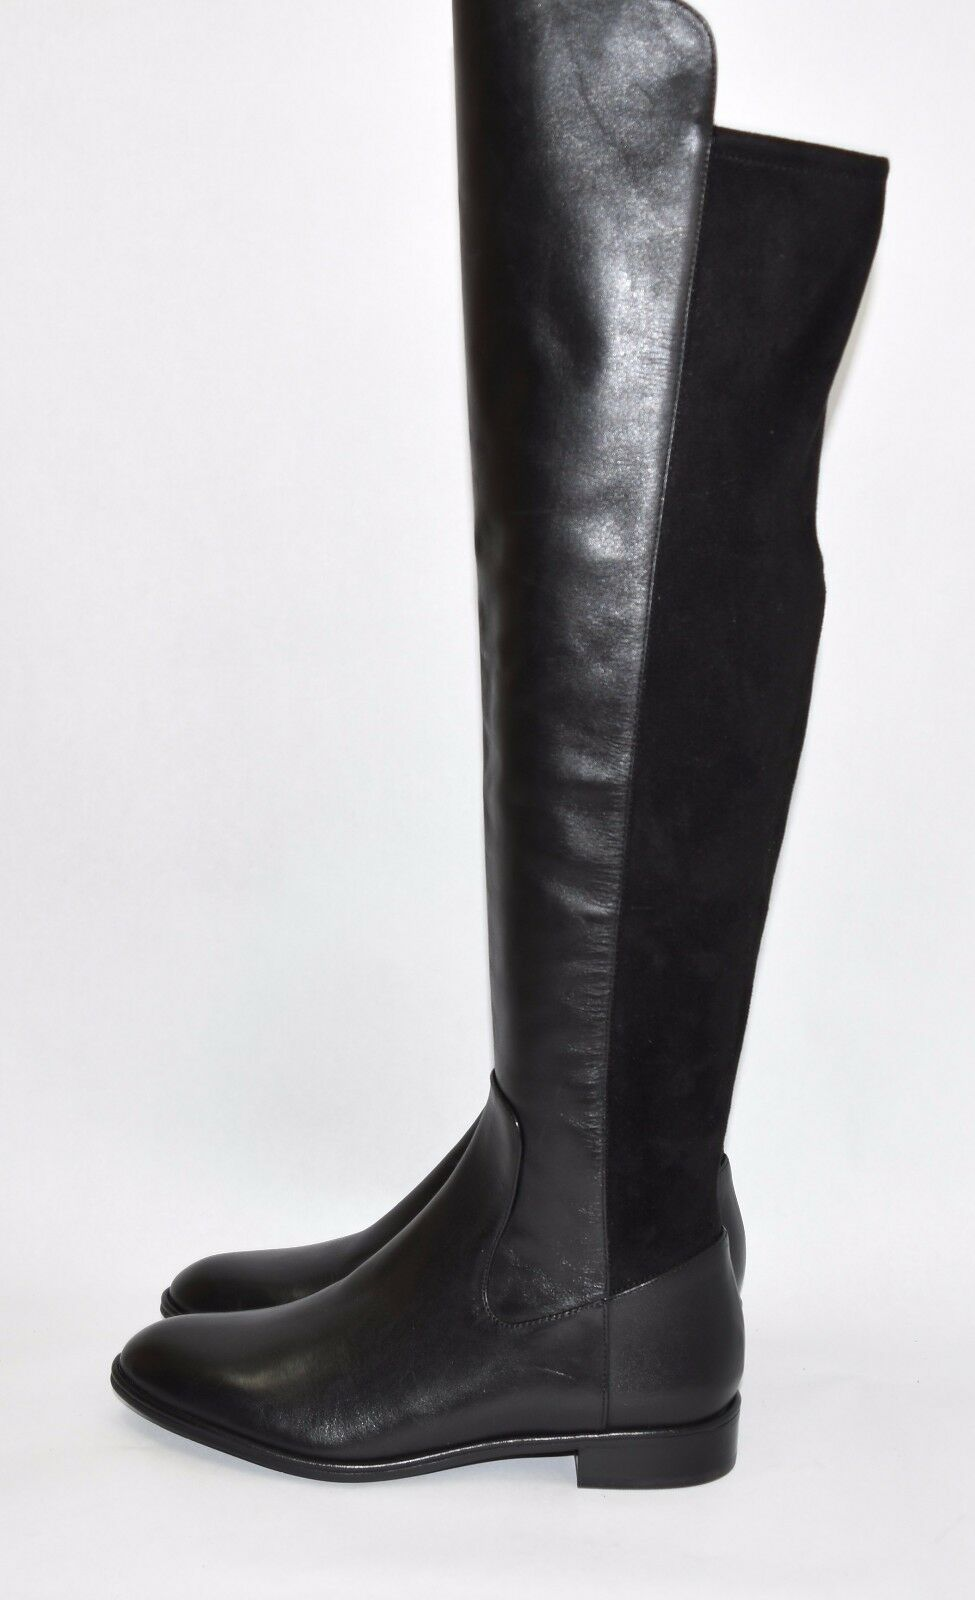 400 400 400 Via Spiga Itala Tall OVER THE KNEE riding OTK BLACK LEATHER Boot 7 37 (V2) 0081a1